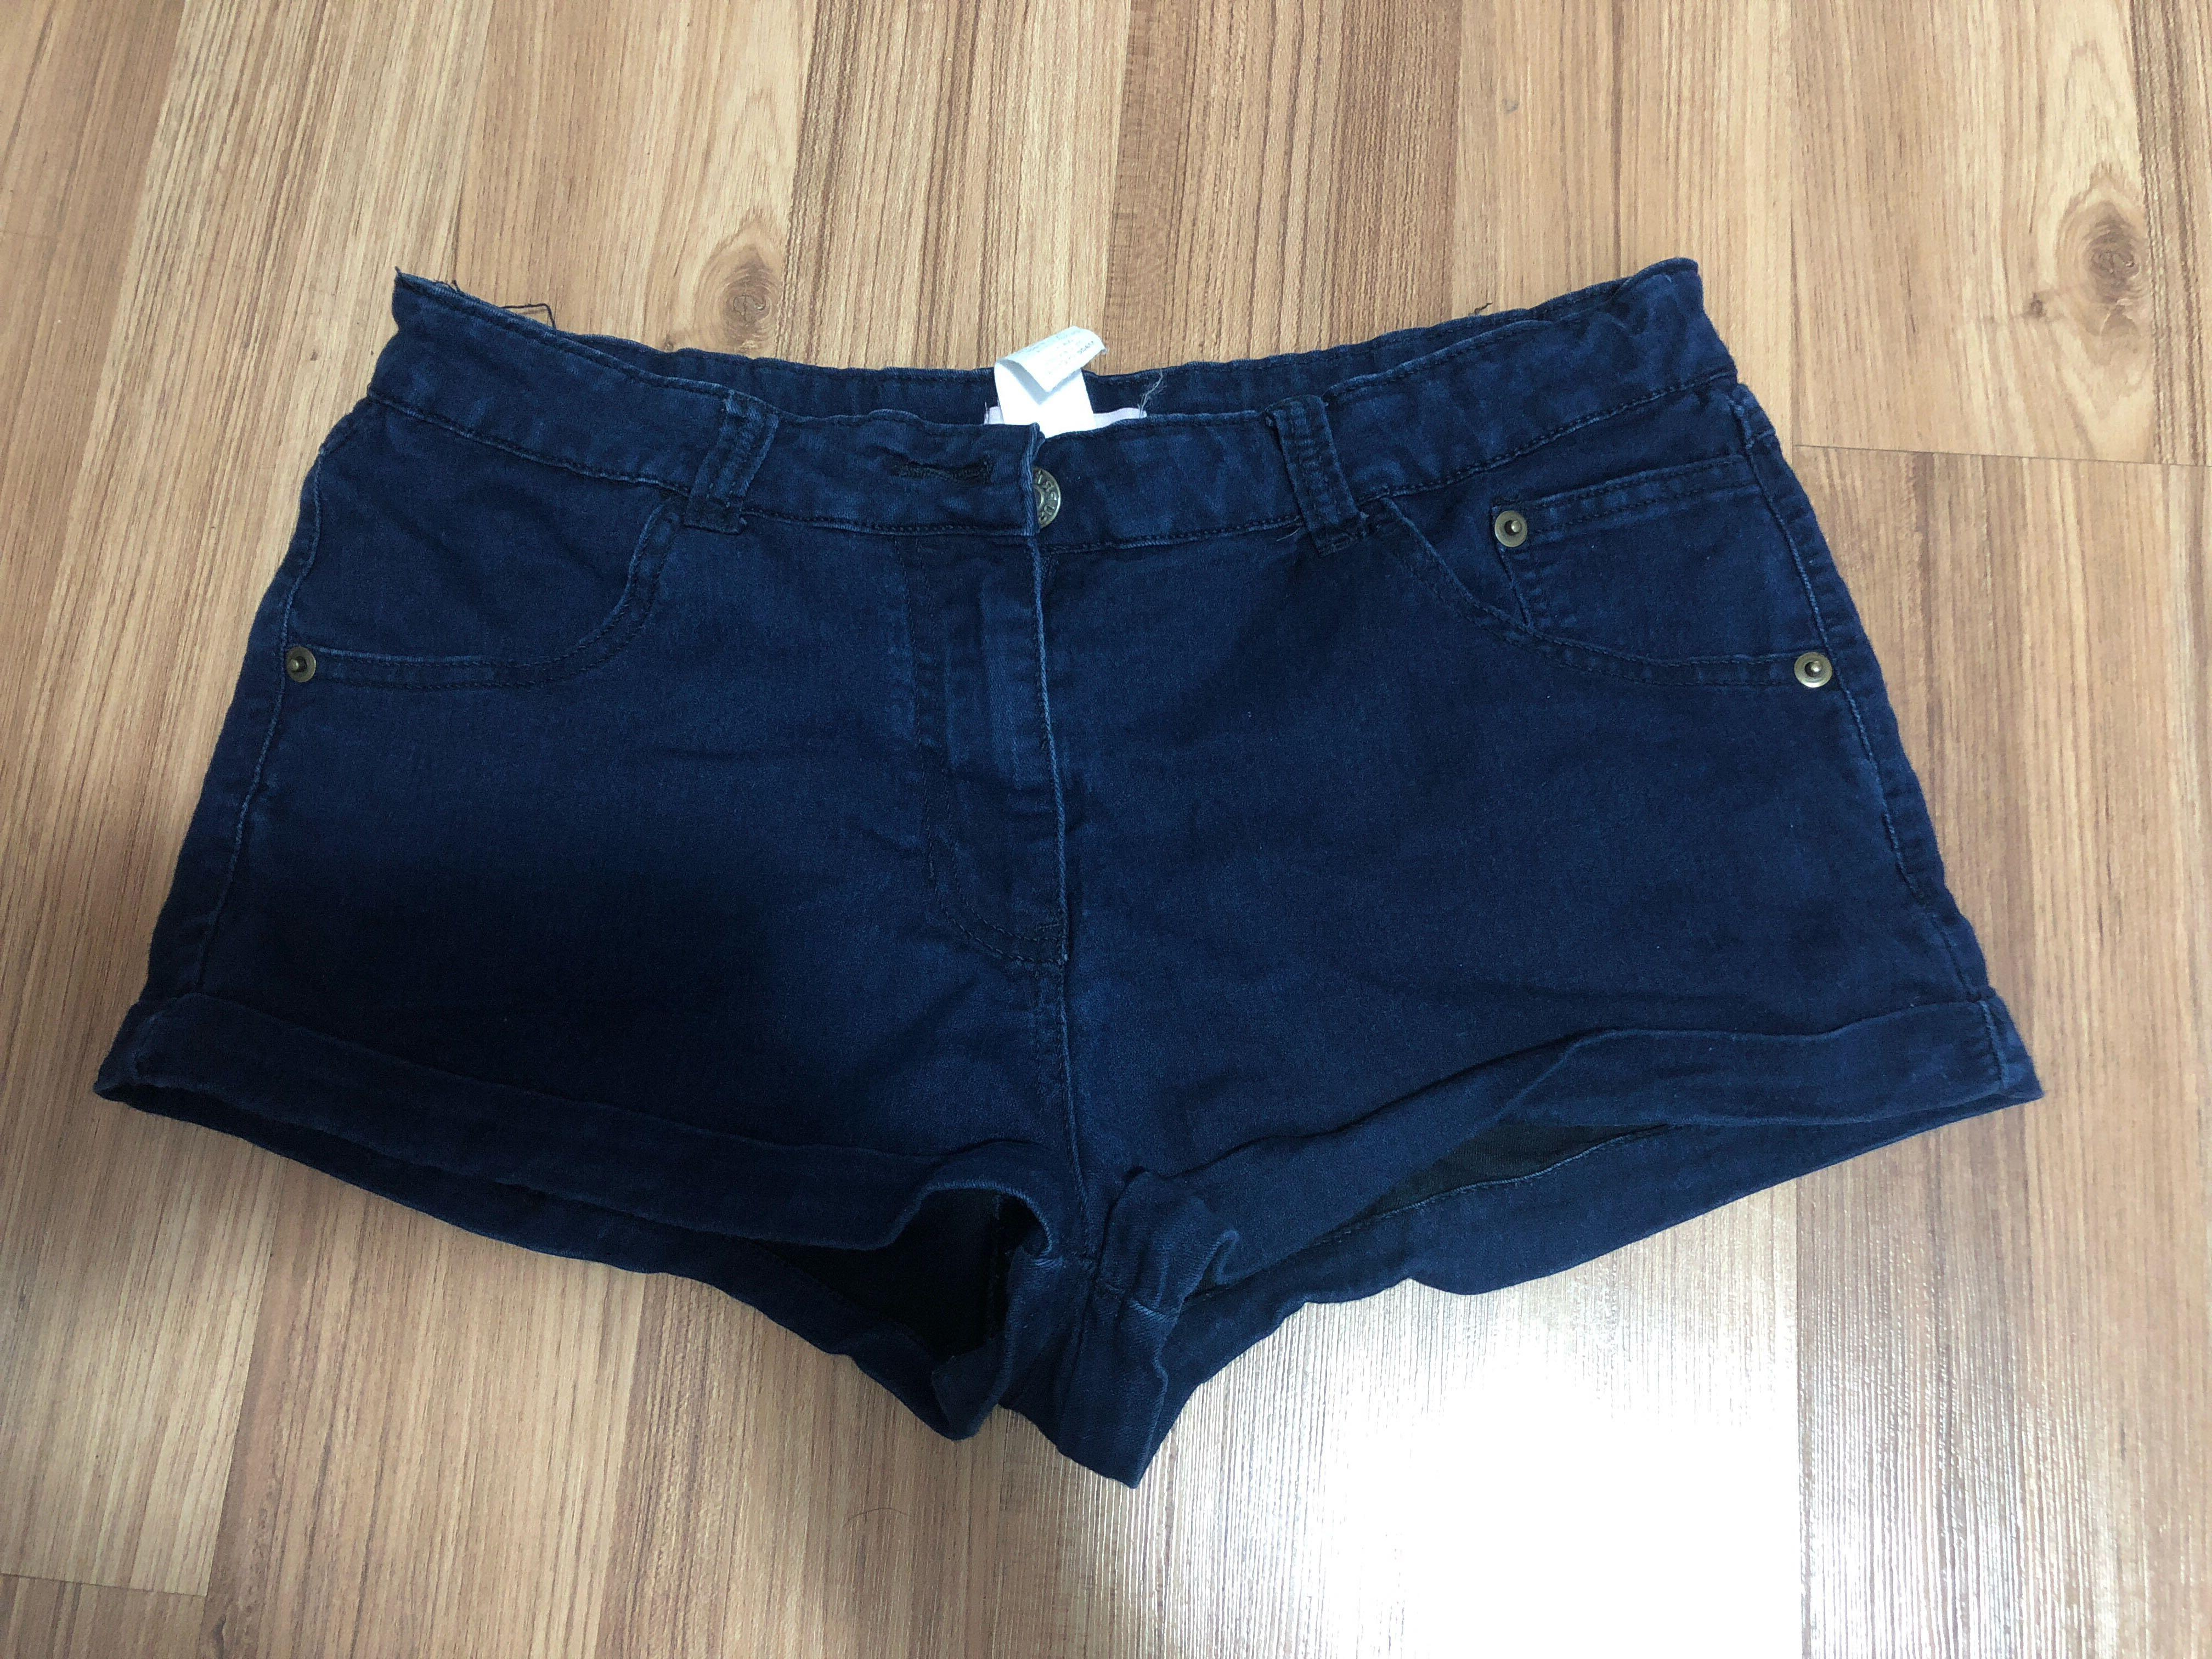 Navy denim look shorts